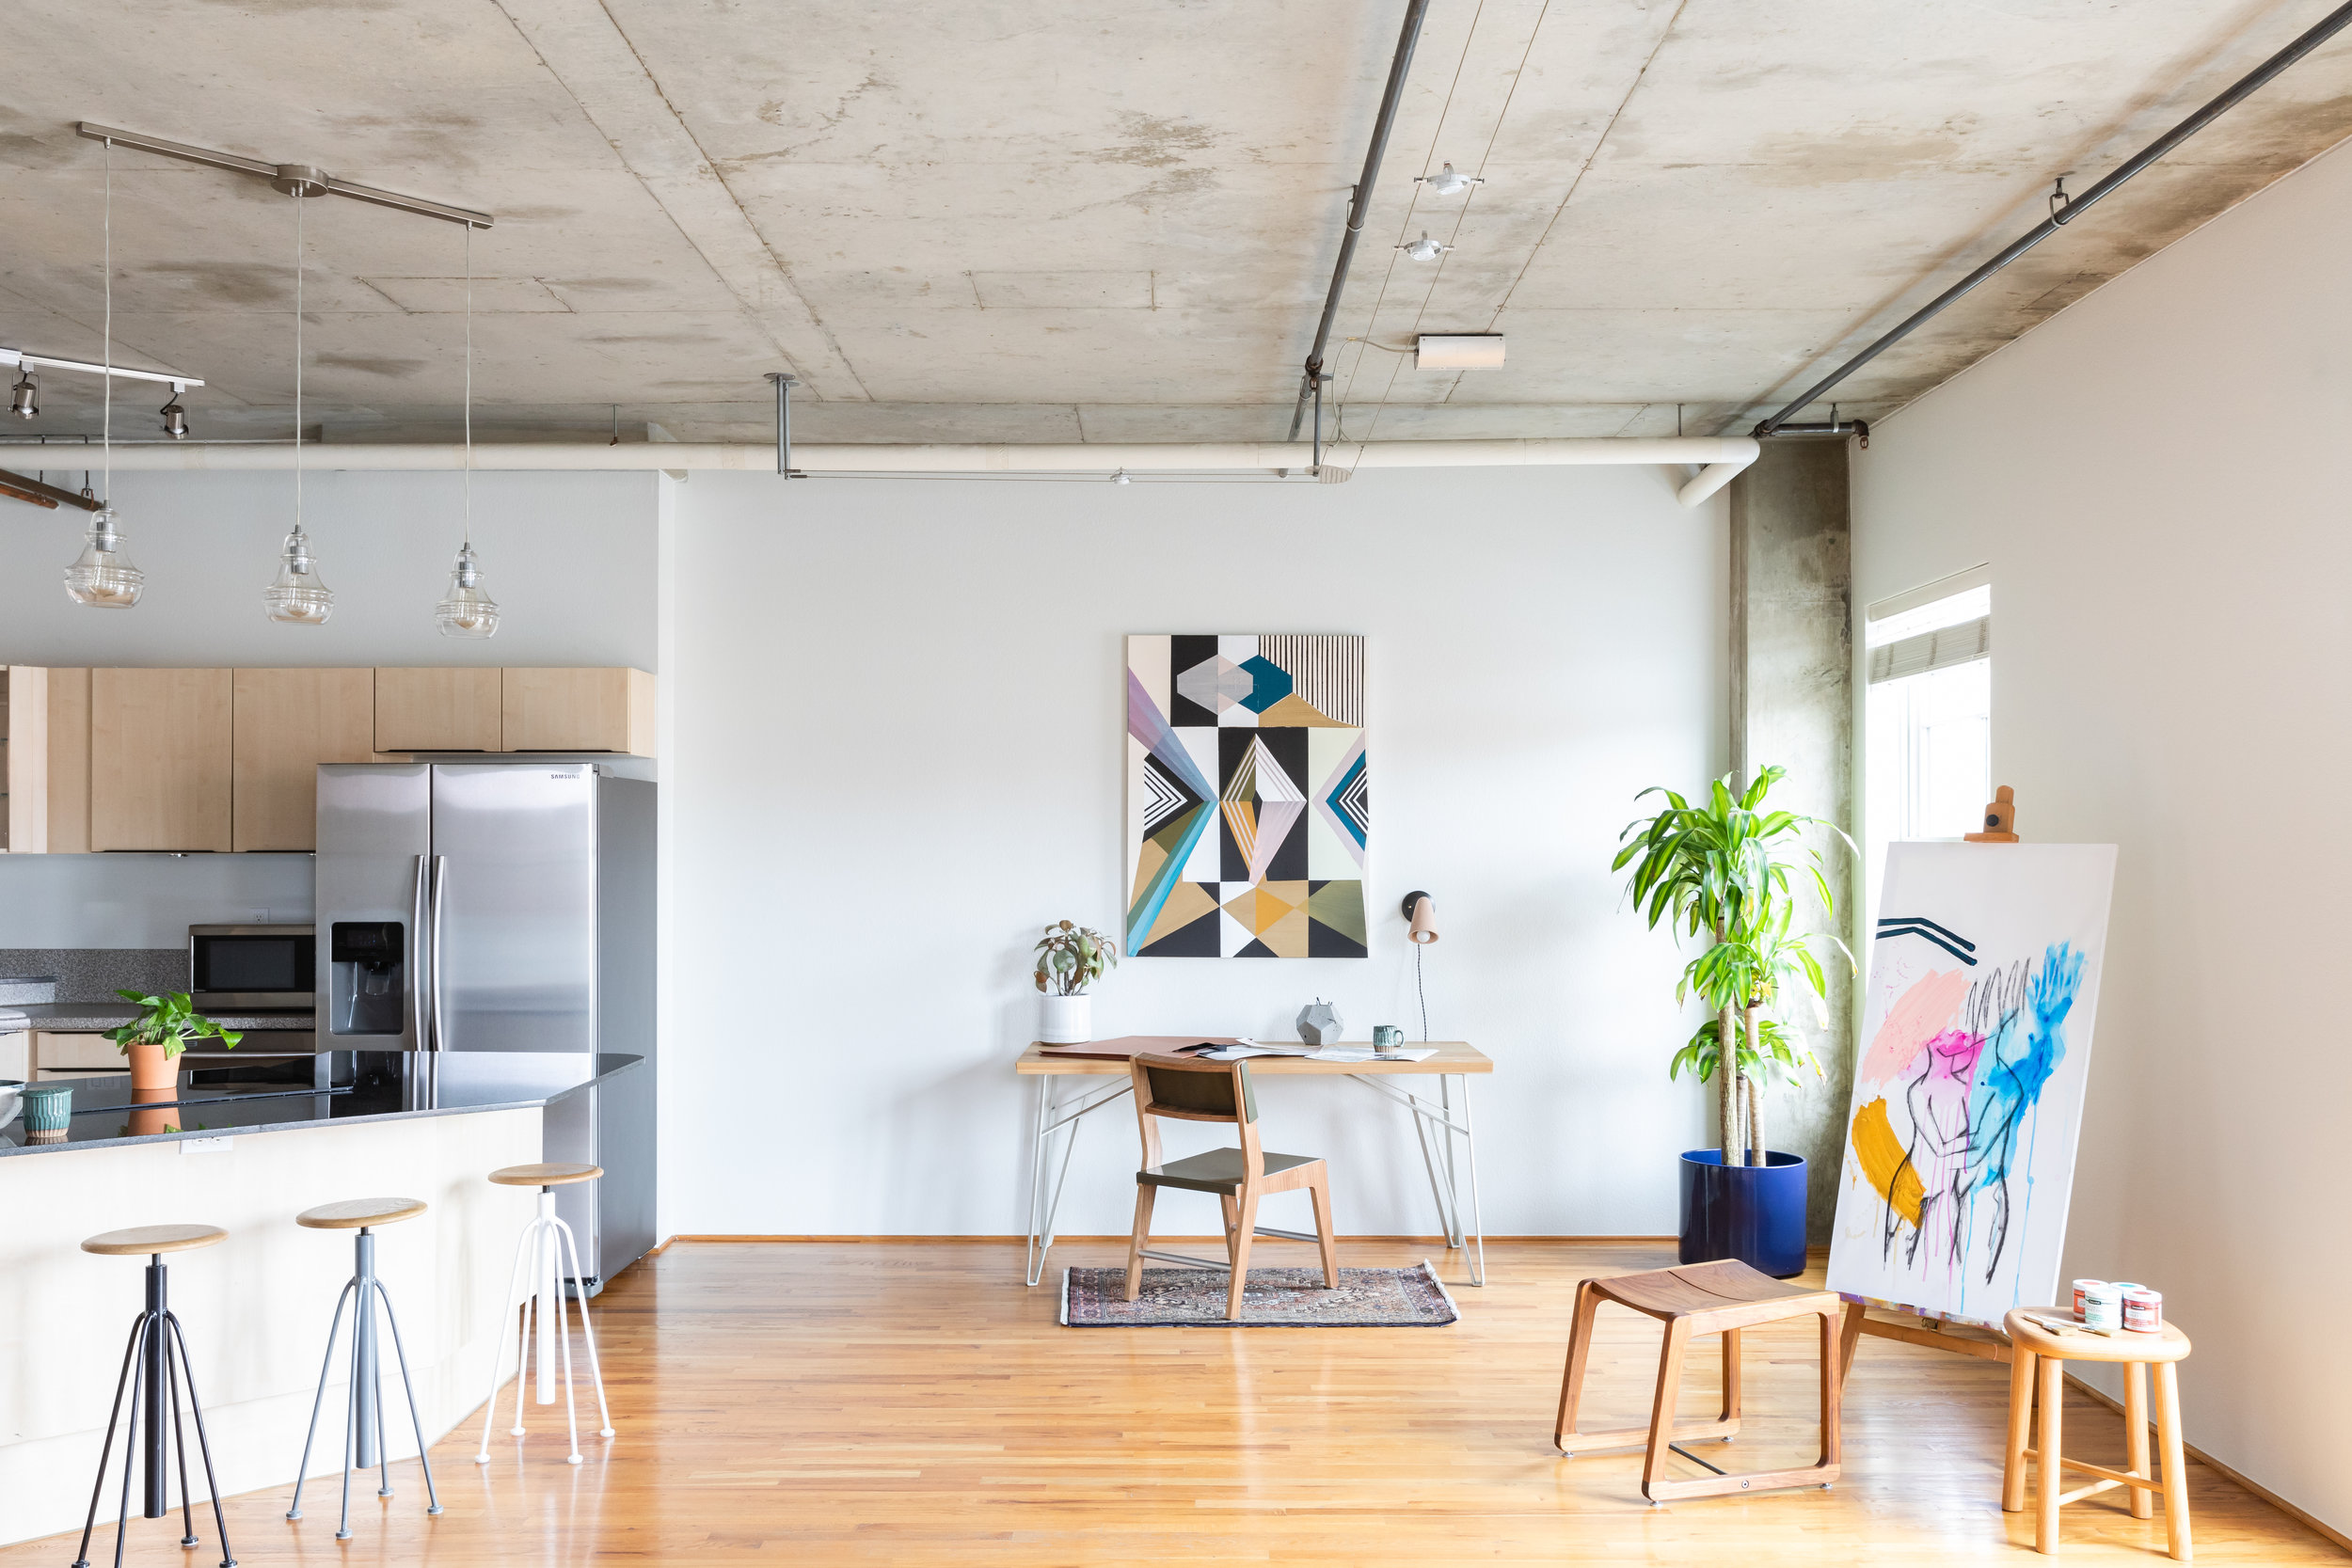 1499 Blake St. - Inspired living in the iconic Palace Lofts. Listed by Stan Kniss & Kaitlin Harvey, Slate.For sale at $550,000